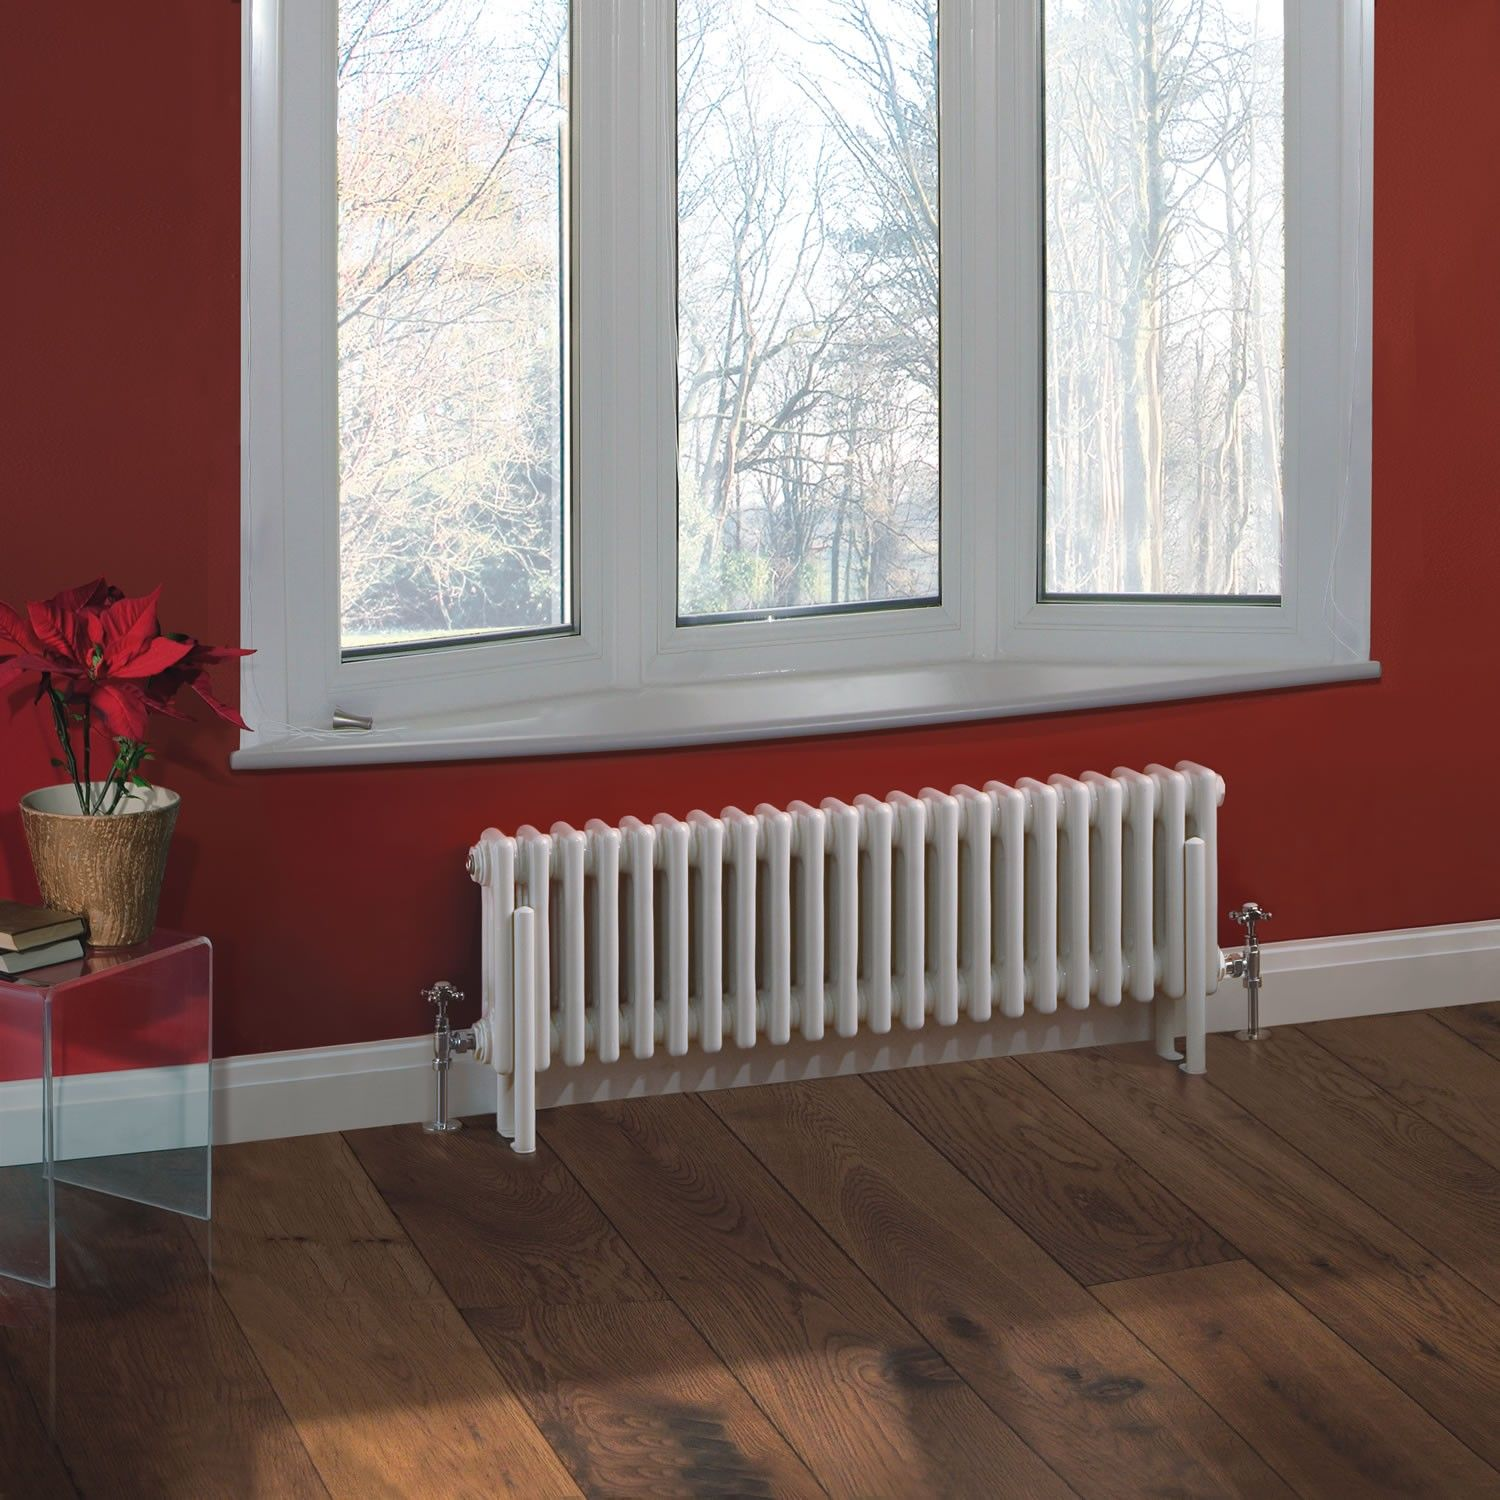 Living Rooms · Traditional 22 X 3 Column Radiator ... Part 87